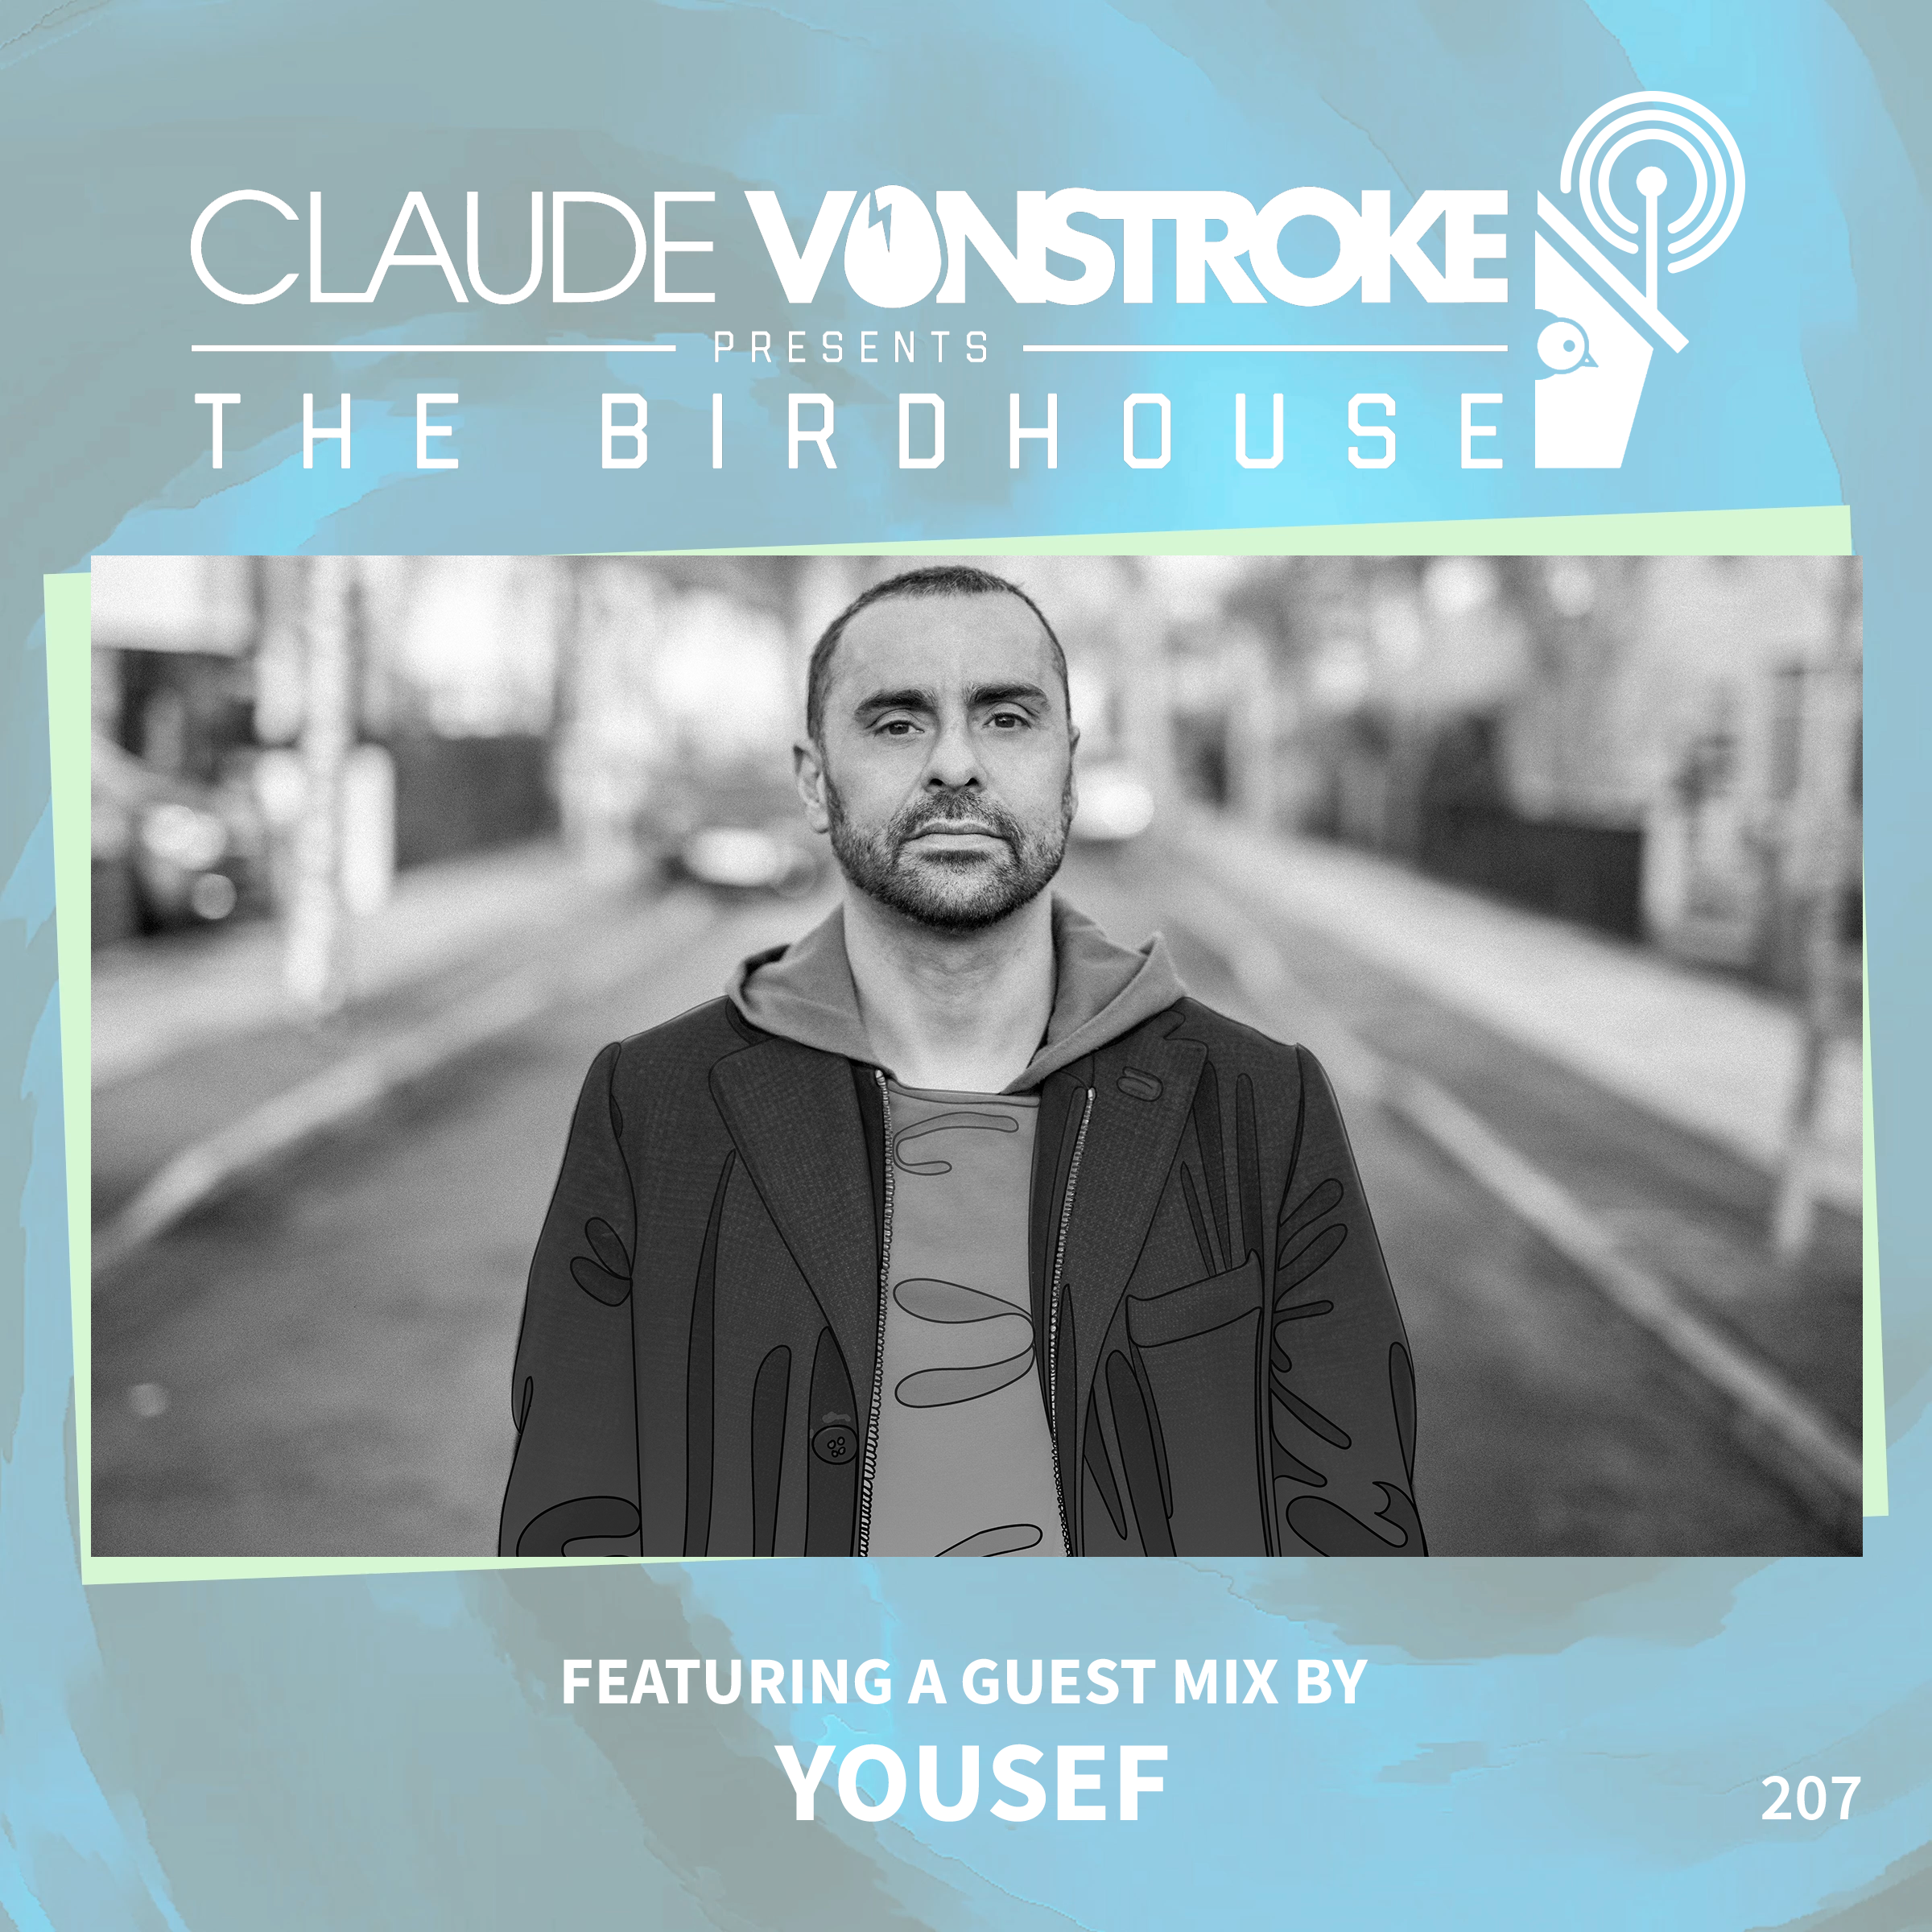 THE BIRDHOUSE 207 - Featuring Yousef